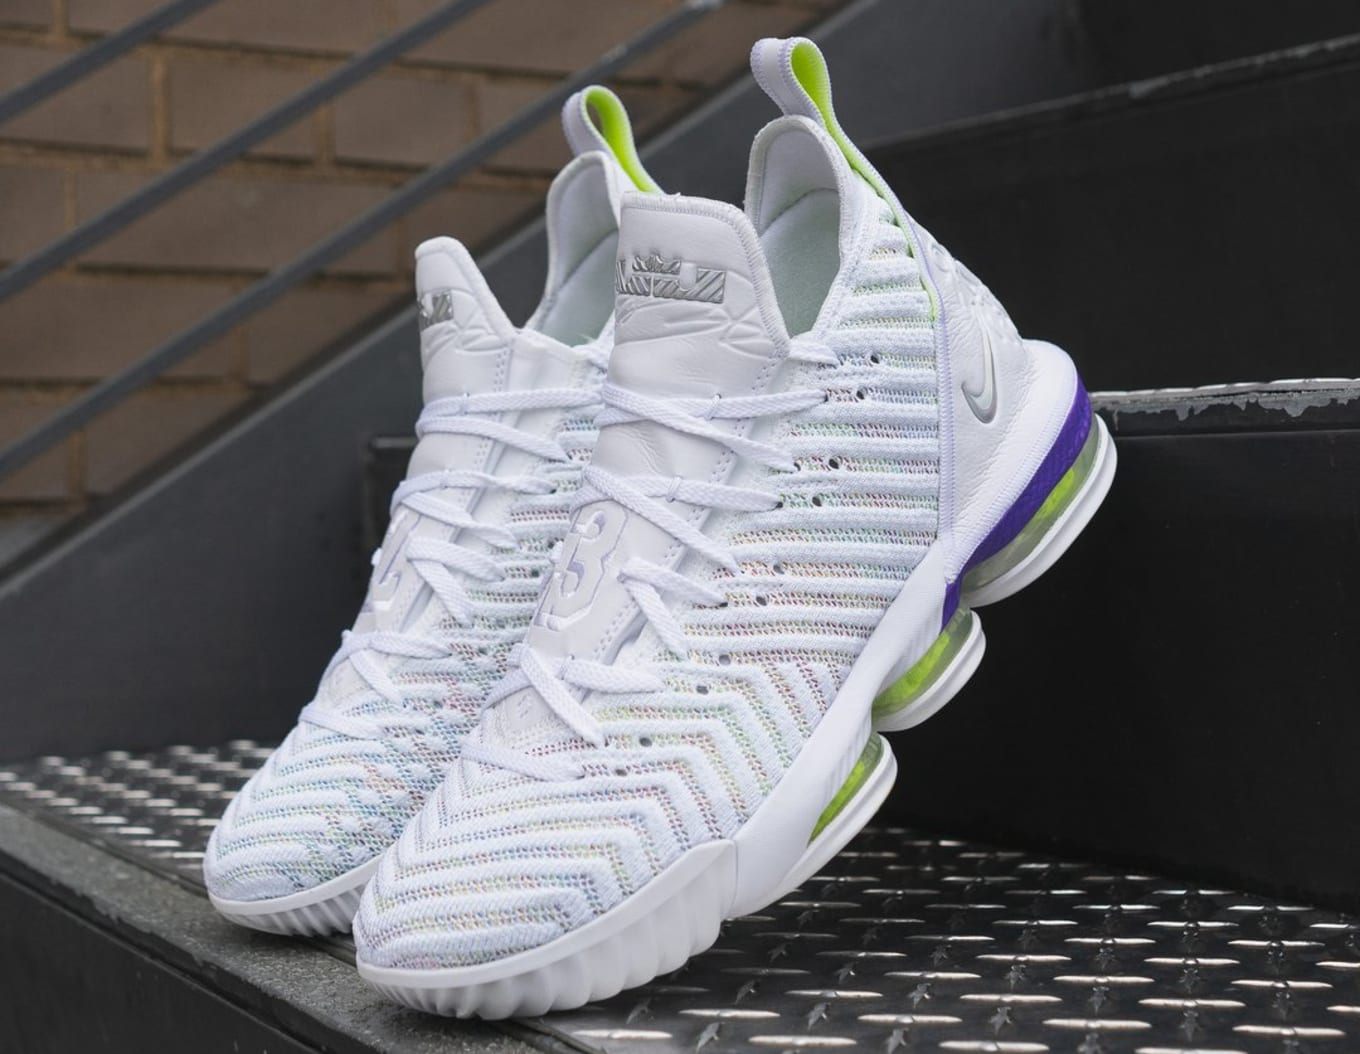 8c2d57e37a2 Nike LeBron 16 White Multicolor-Hyper Grape-Volt AO2588-102 Release ...